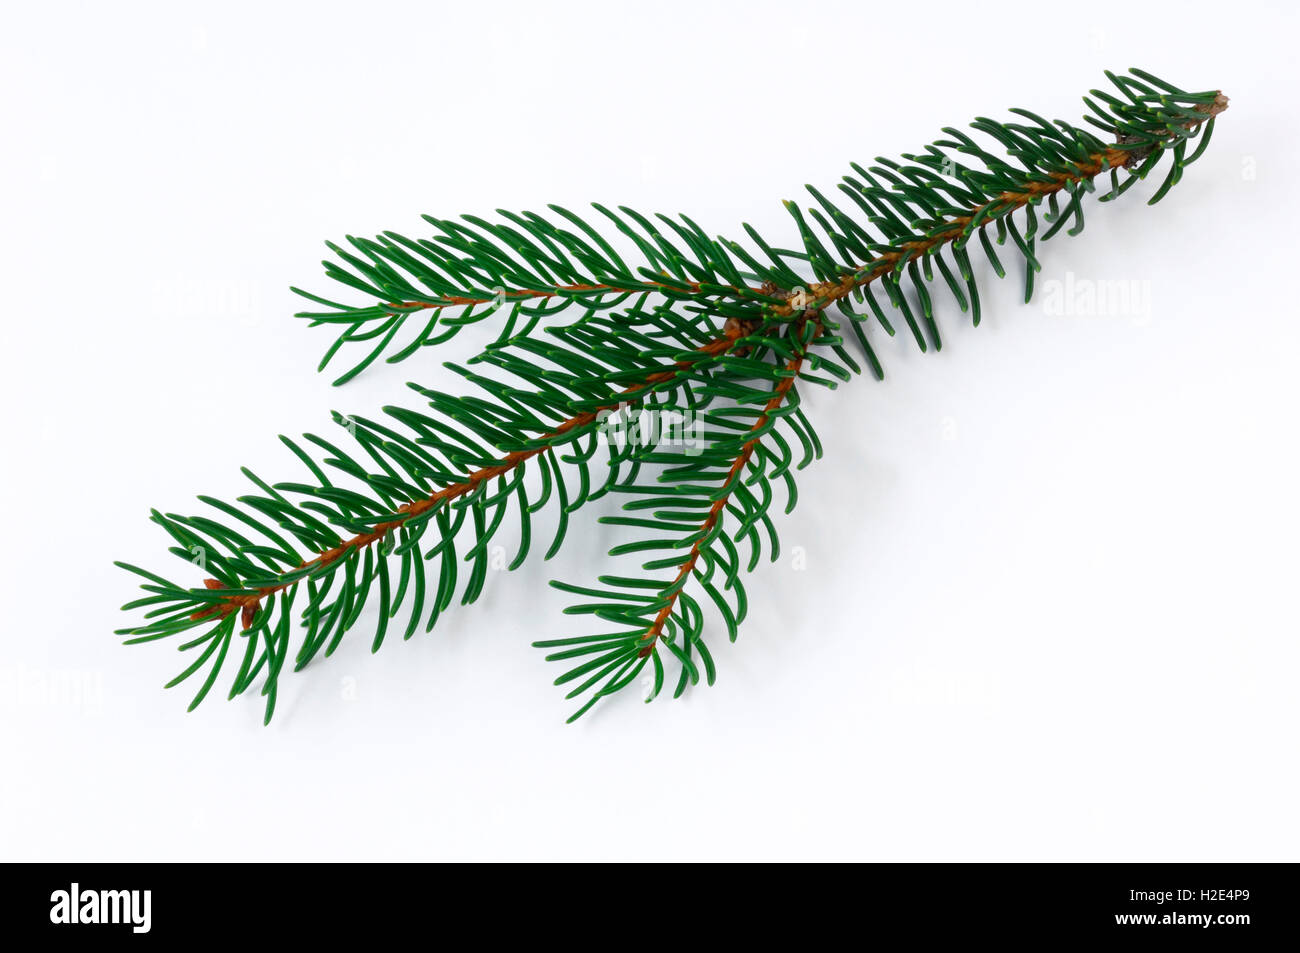 Norway Spruce, Common Spruce (Picea abies). Healthy twig. Studio picture against a white background. Germany - Stock Image